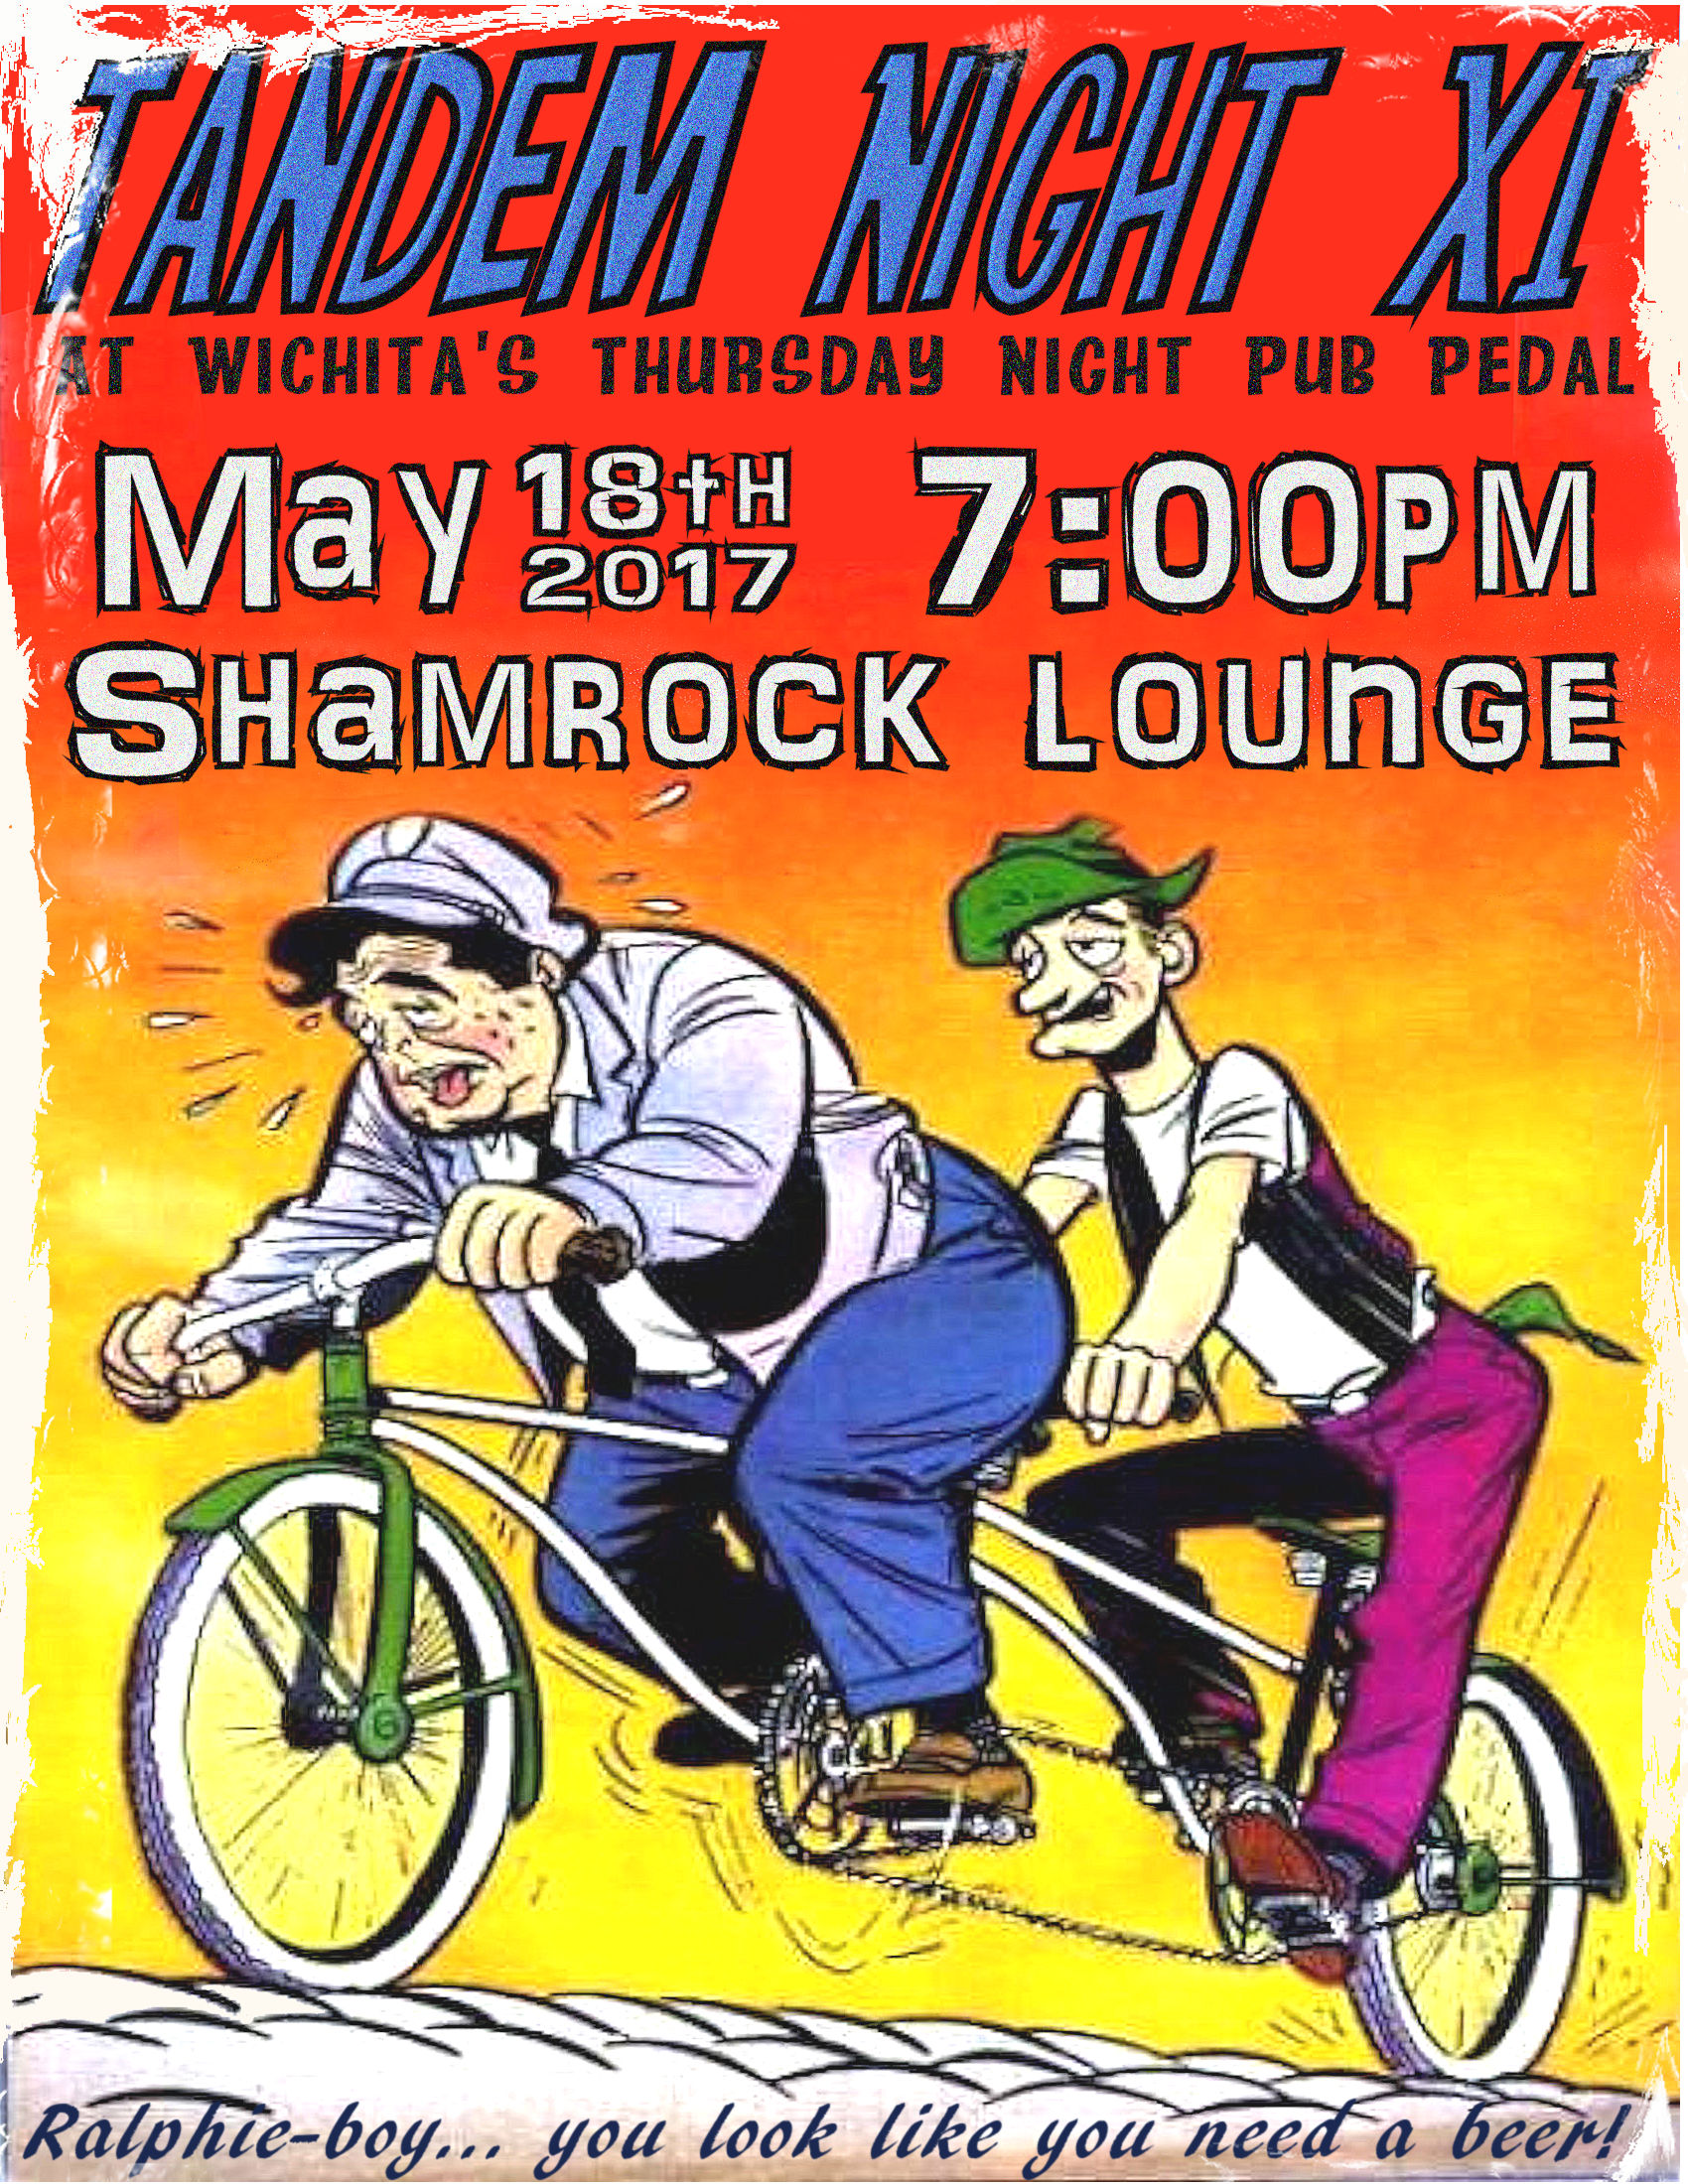 Tandem Night XI @ Shamrock Lounge | Wichita | Kansas | United States